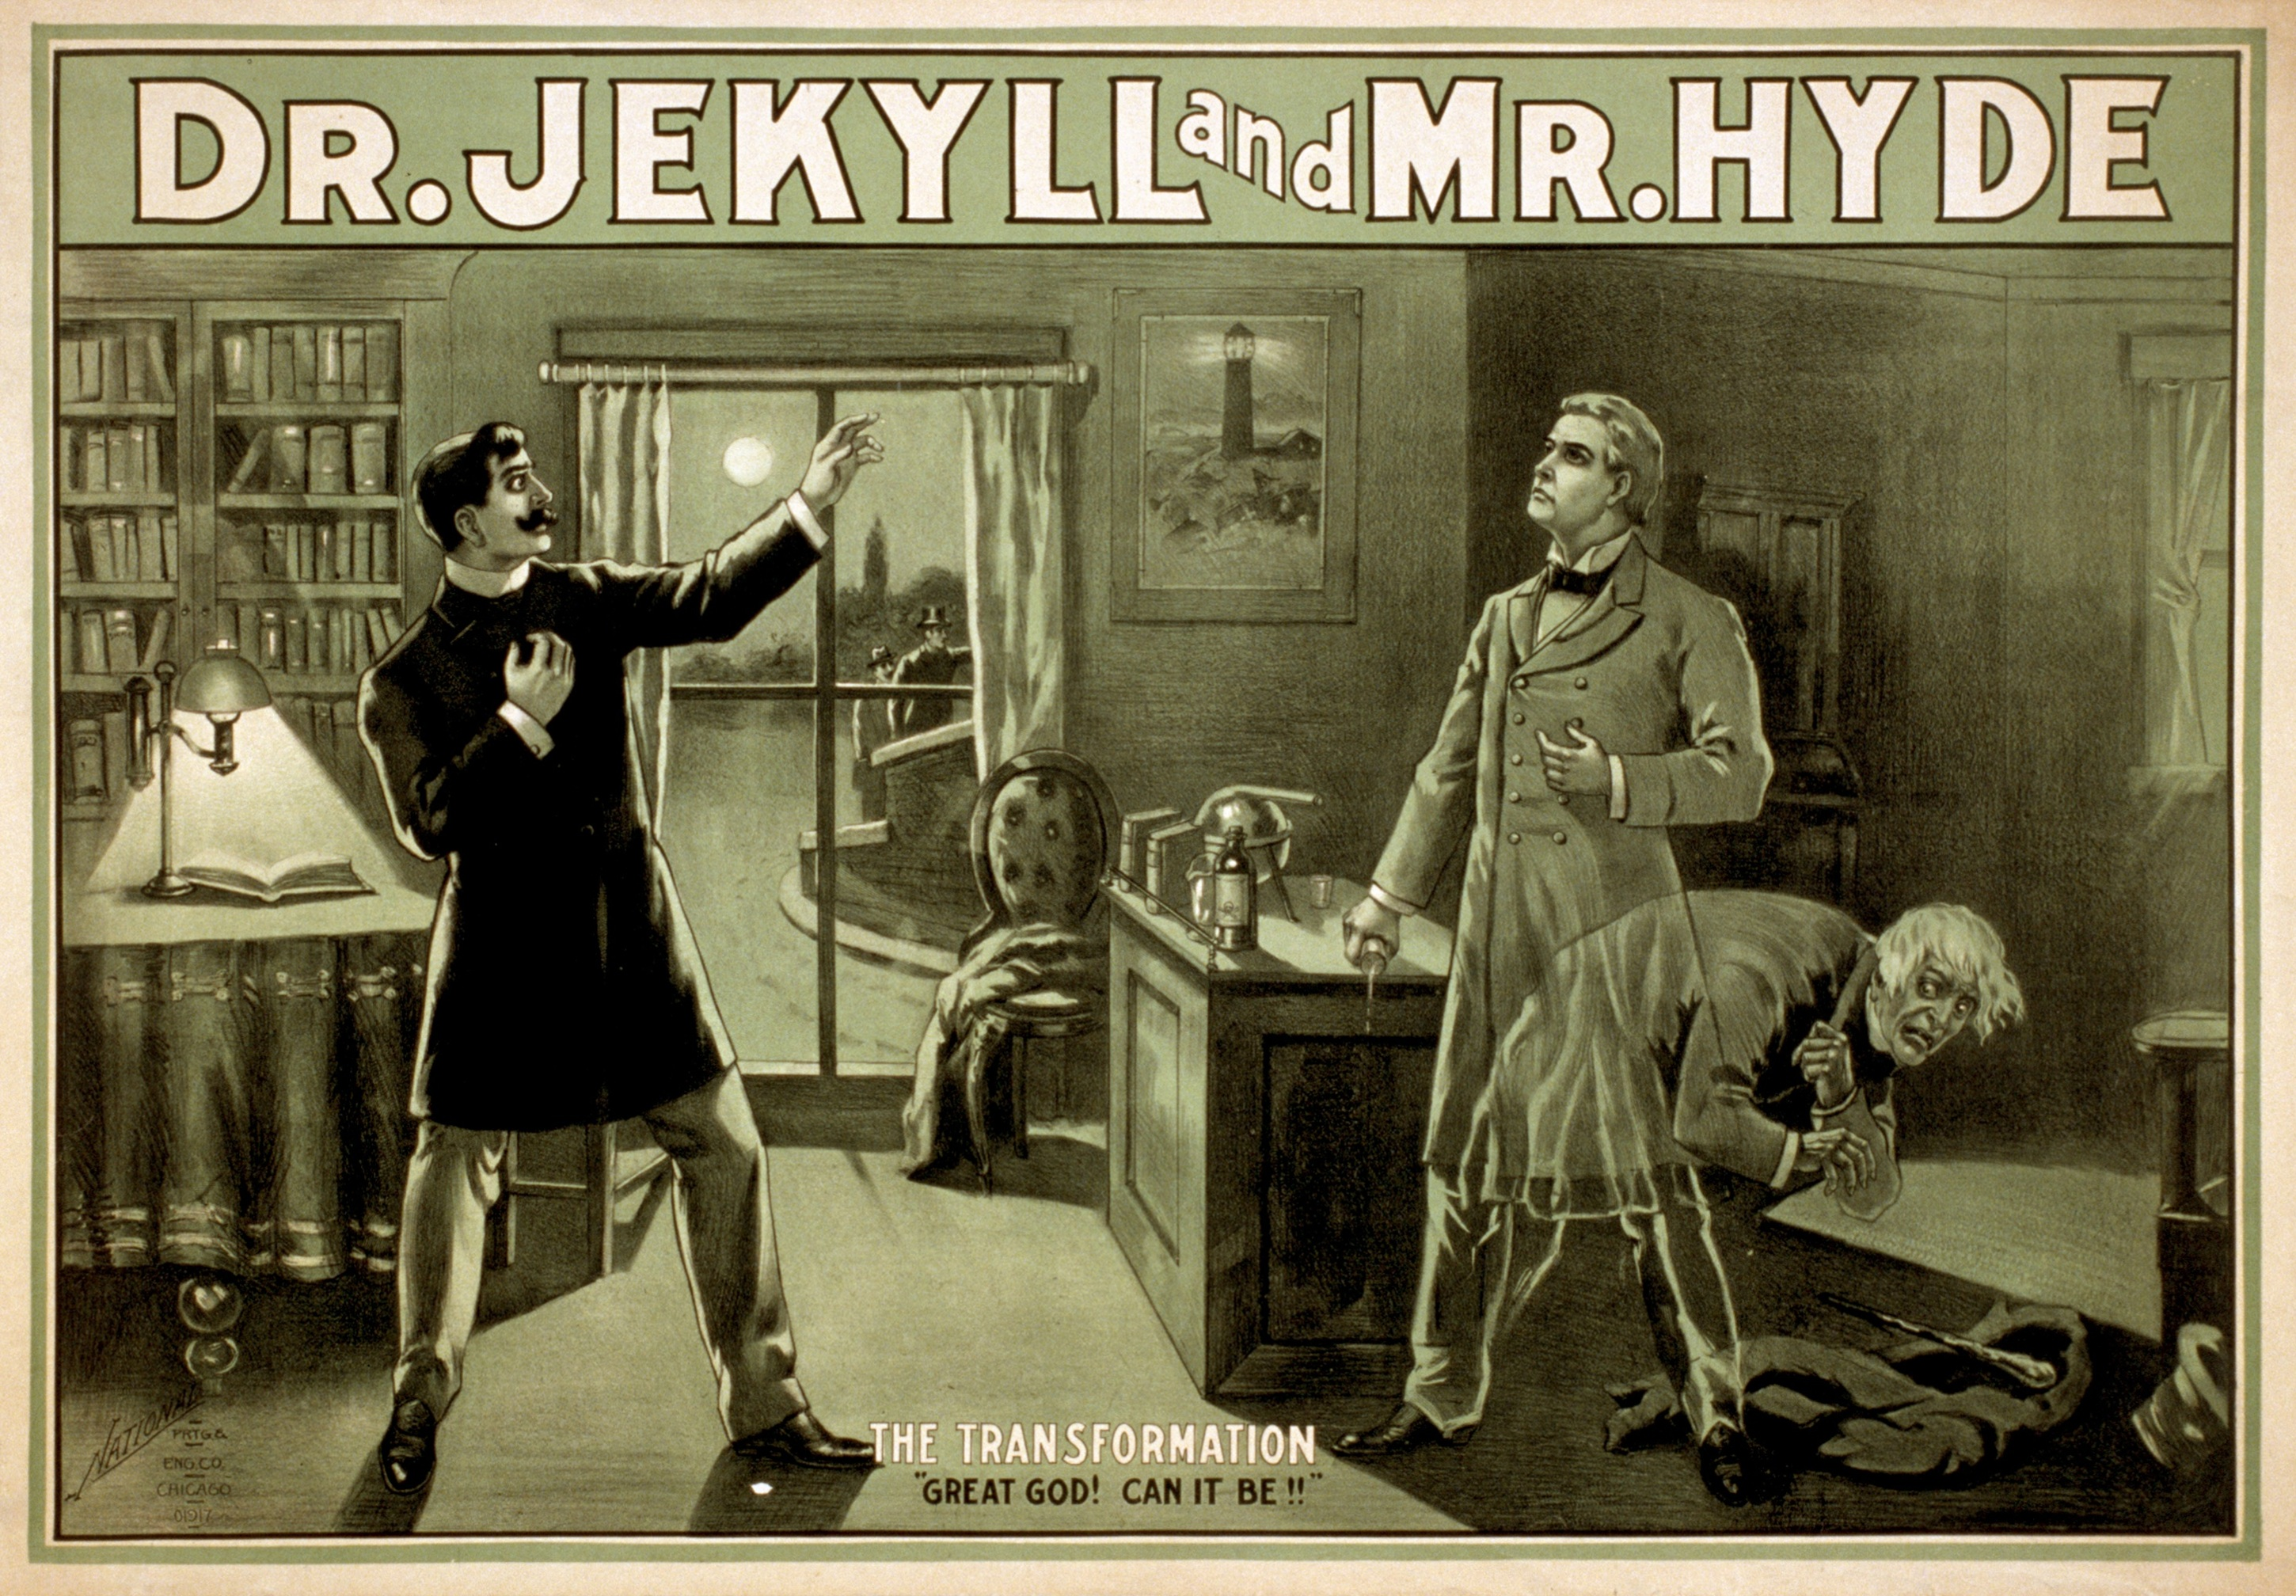 Engels Samenvatting Dr. Jekyll and Mr. Hyde - Robert Louis Stevenson